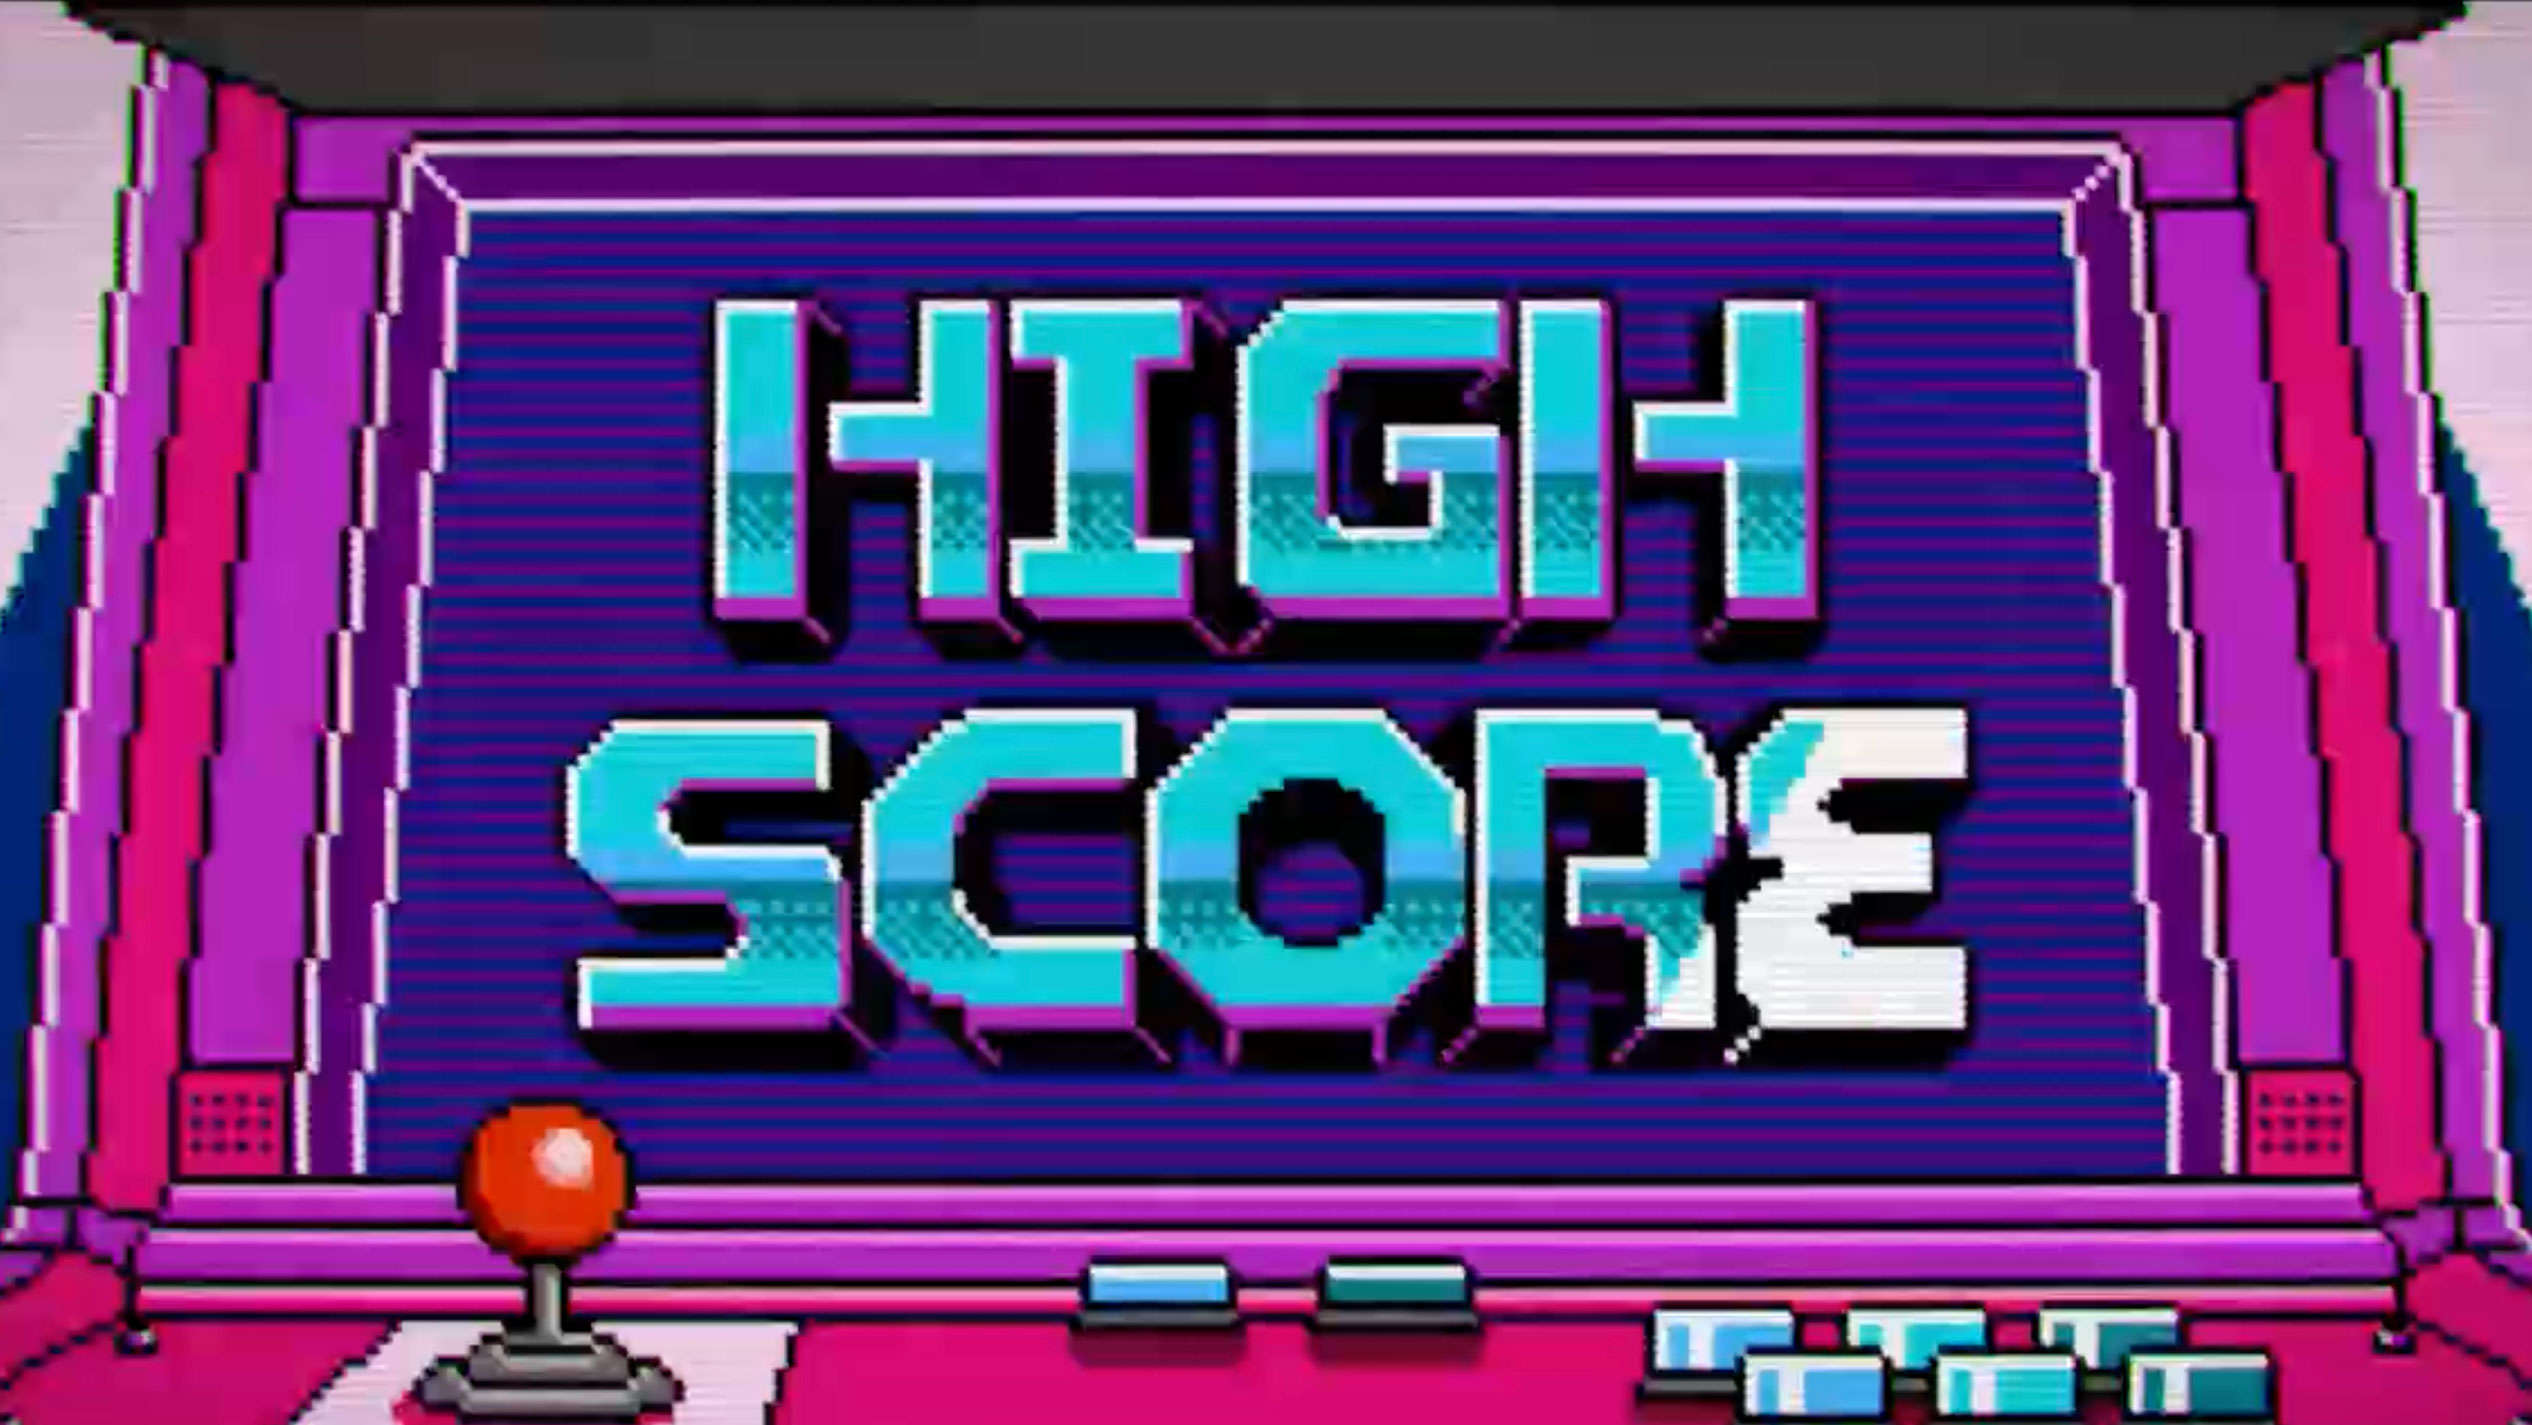 WIRE BUZZ: High Score trailer levels up; AMC rebooting John Ritter's Stay Tuned; more